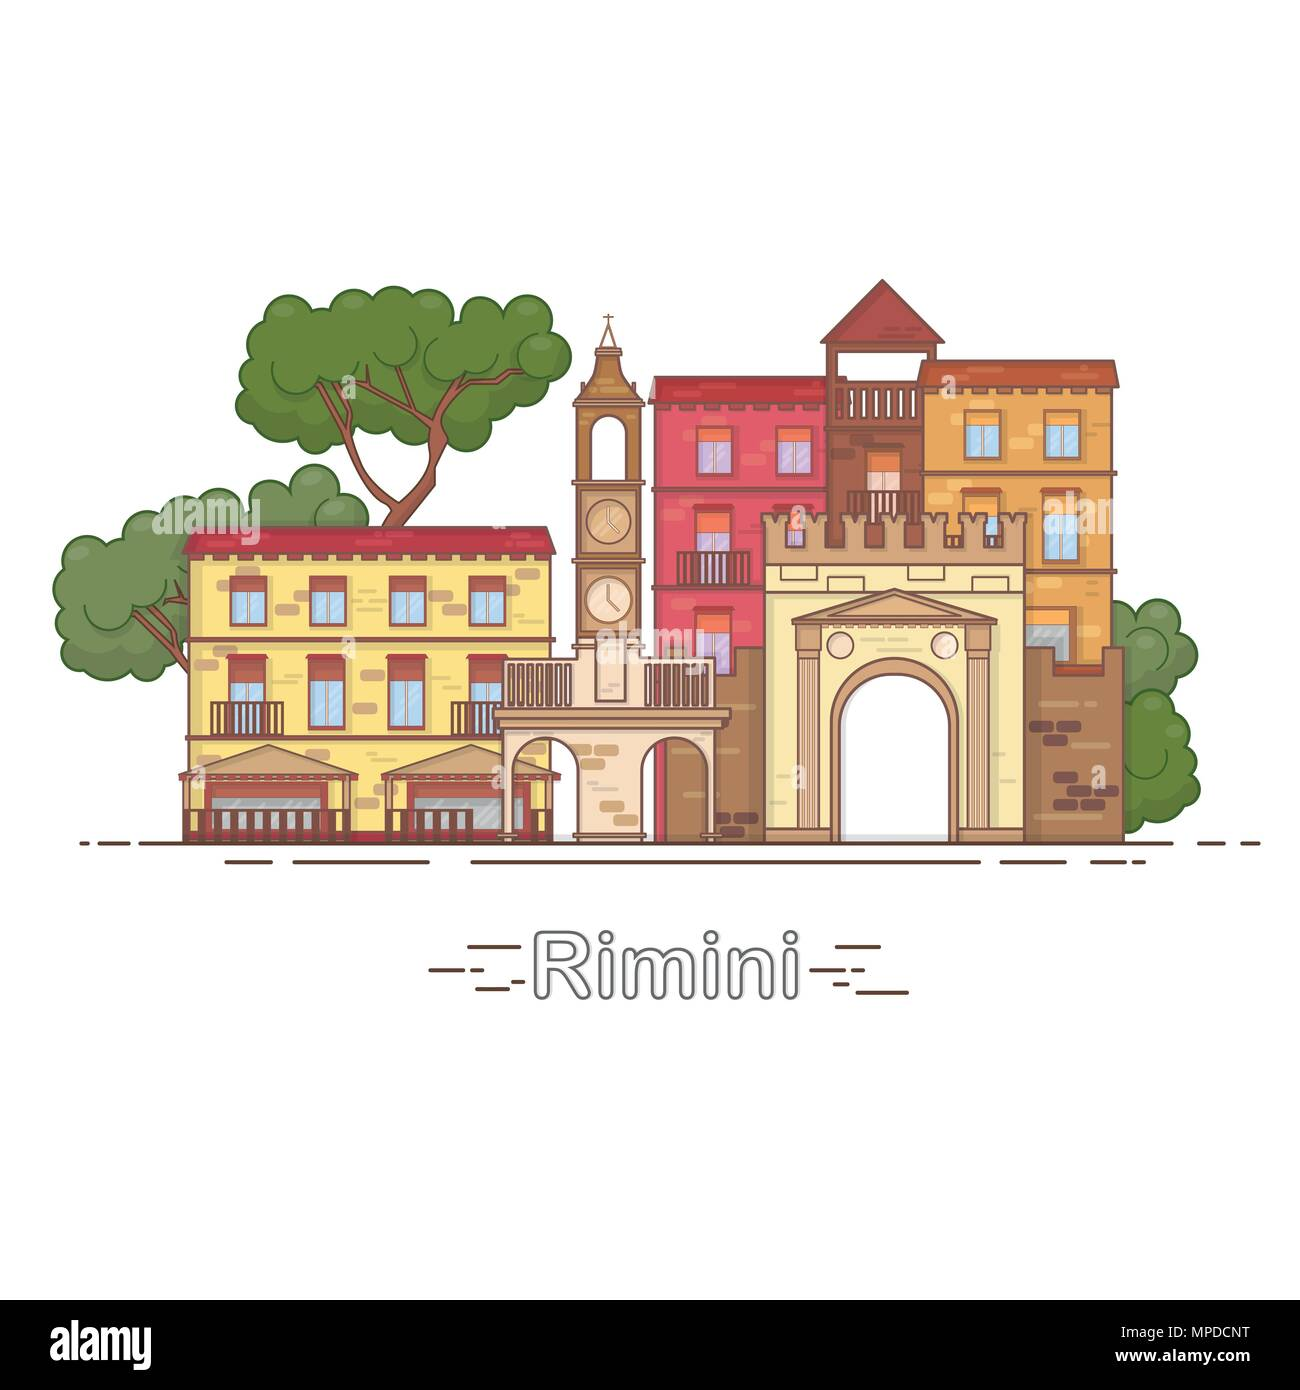 Italy, Rimini outline city skyline, linear illustration, banner, travel landmark - Stock Image